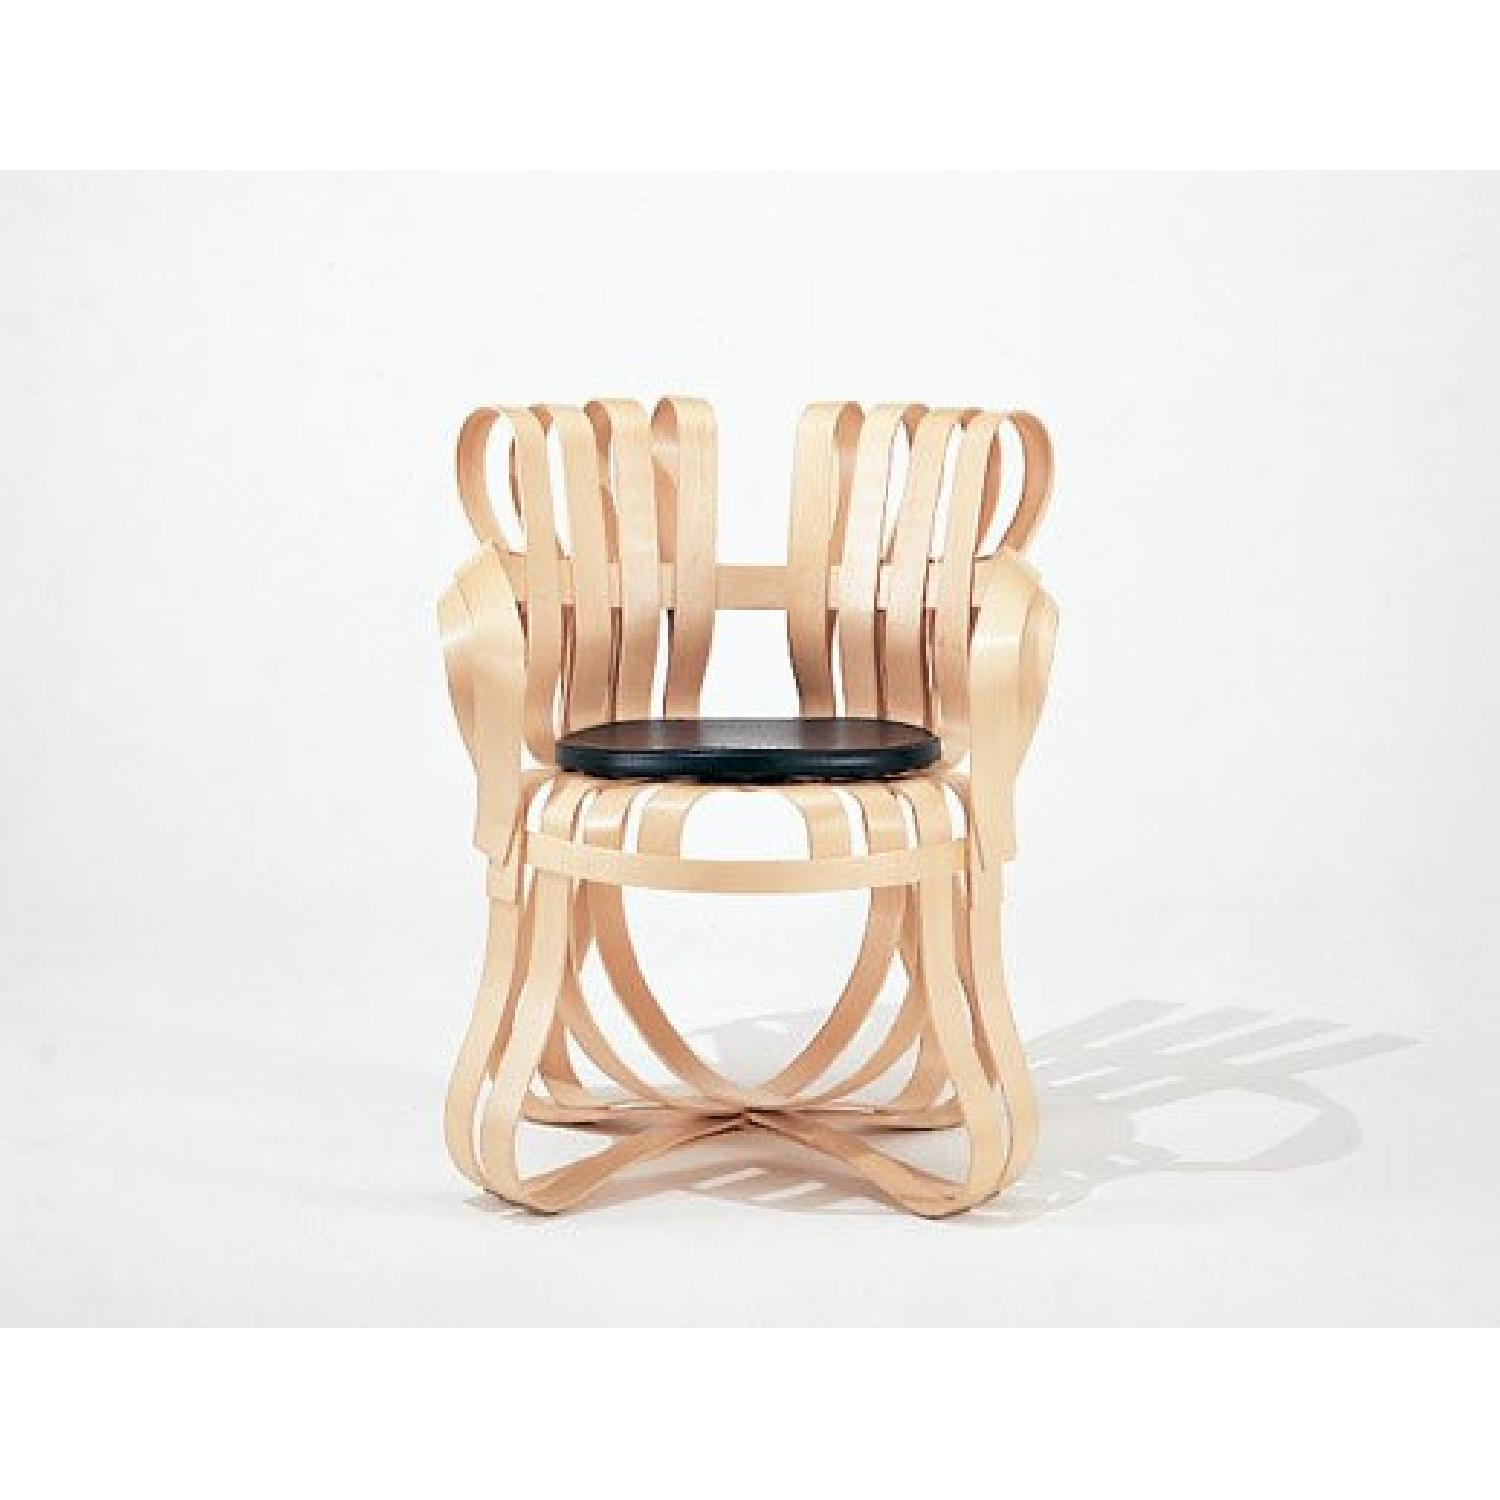 Knoll Gehry Cross Check Chairs - image-4